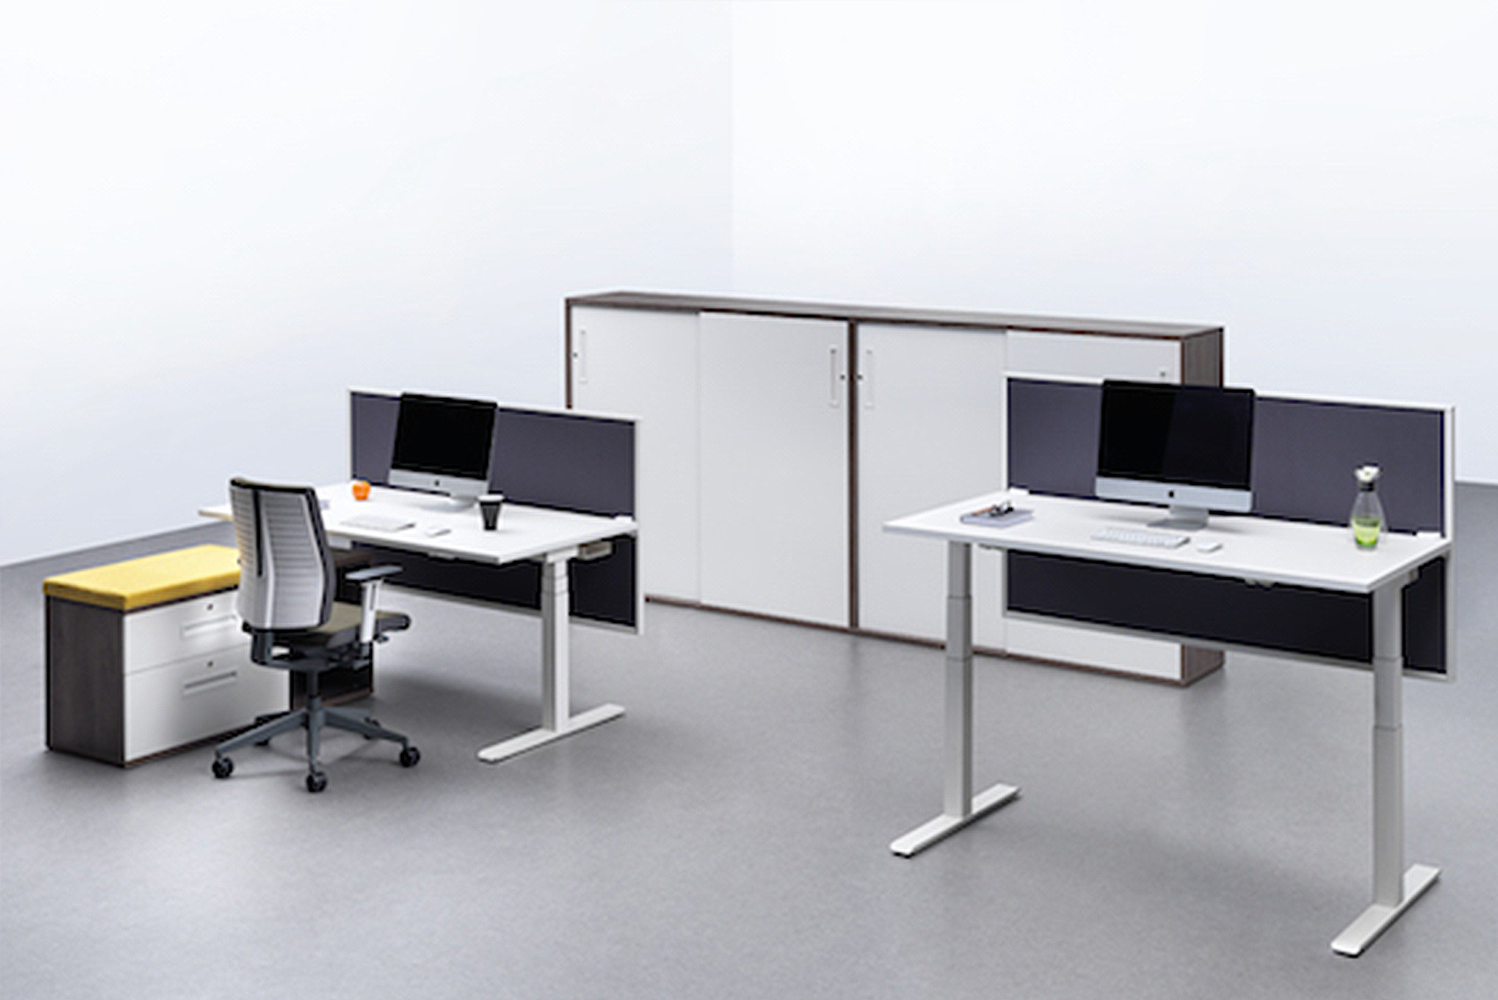 Chemistry can be manufactured with one of two leg styles, and sliding desktops are available as a means to help hide integrated cable management systems.